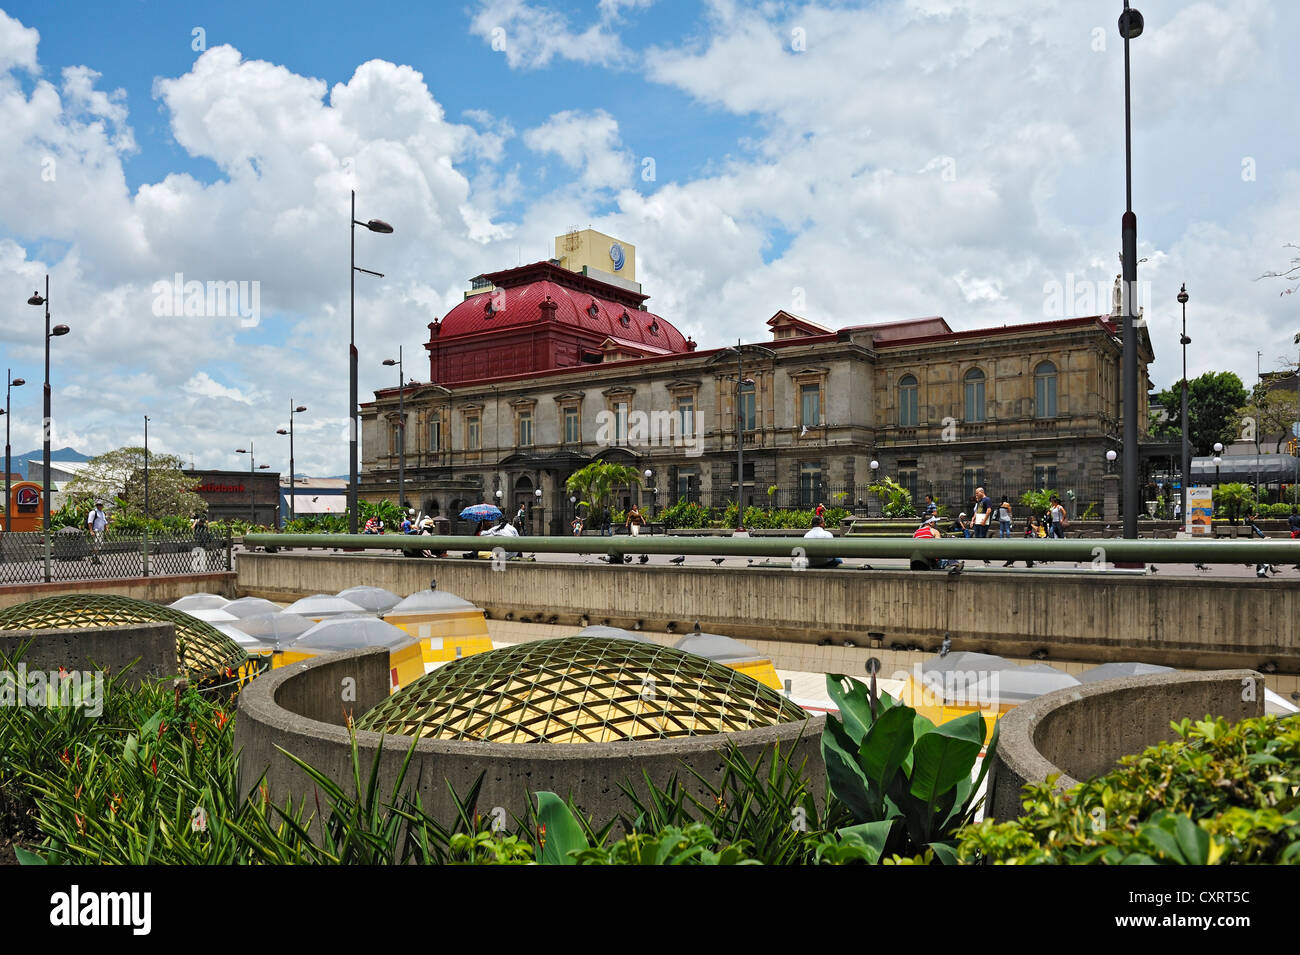 Rear of the National Theatre, roof of the Gold Museum, San Jose, Costa Rica, Central America - Stock Image